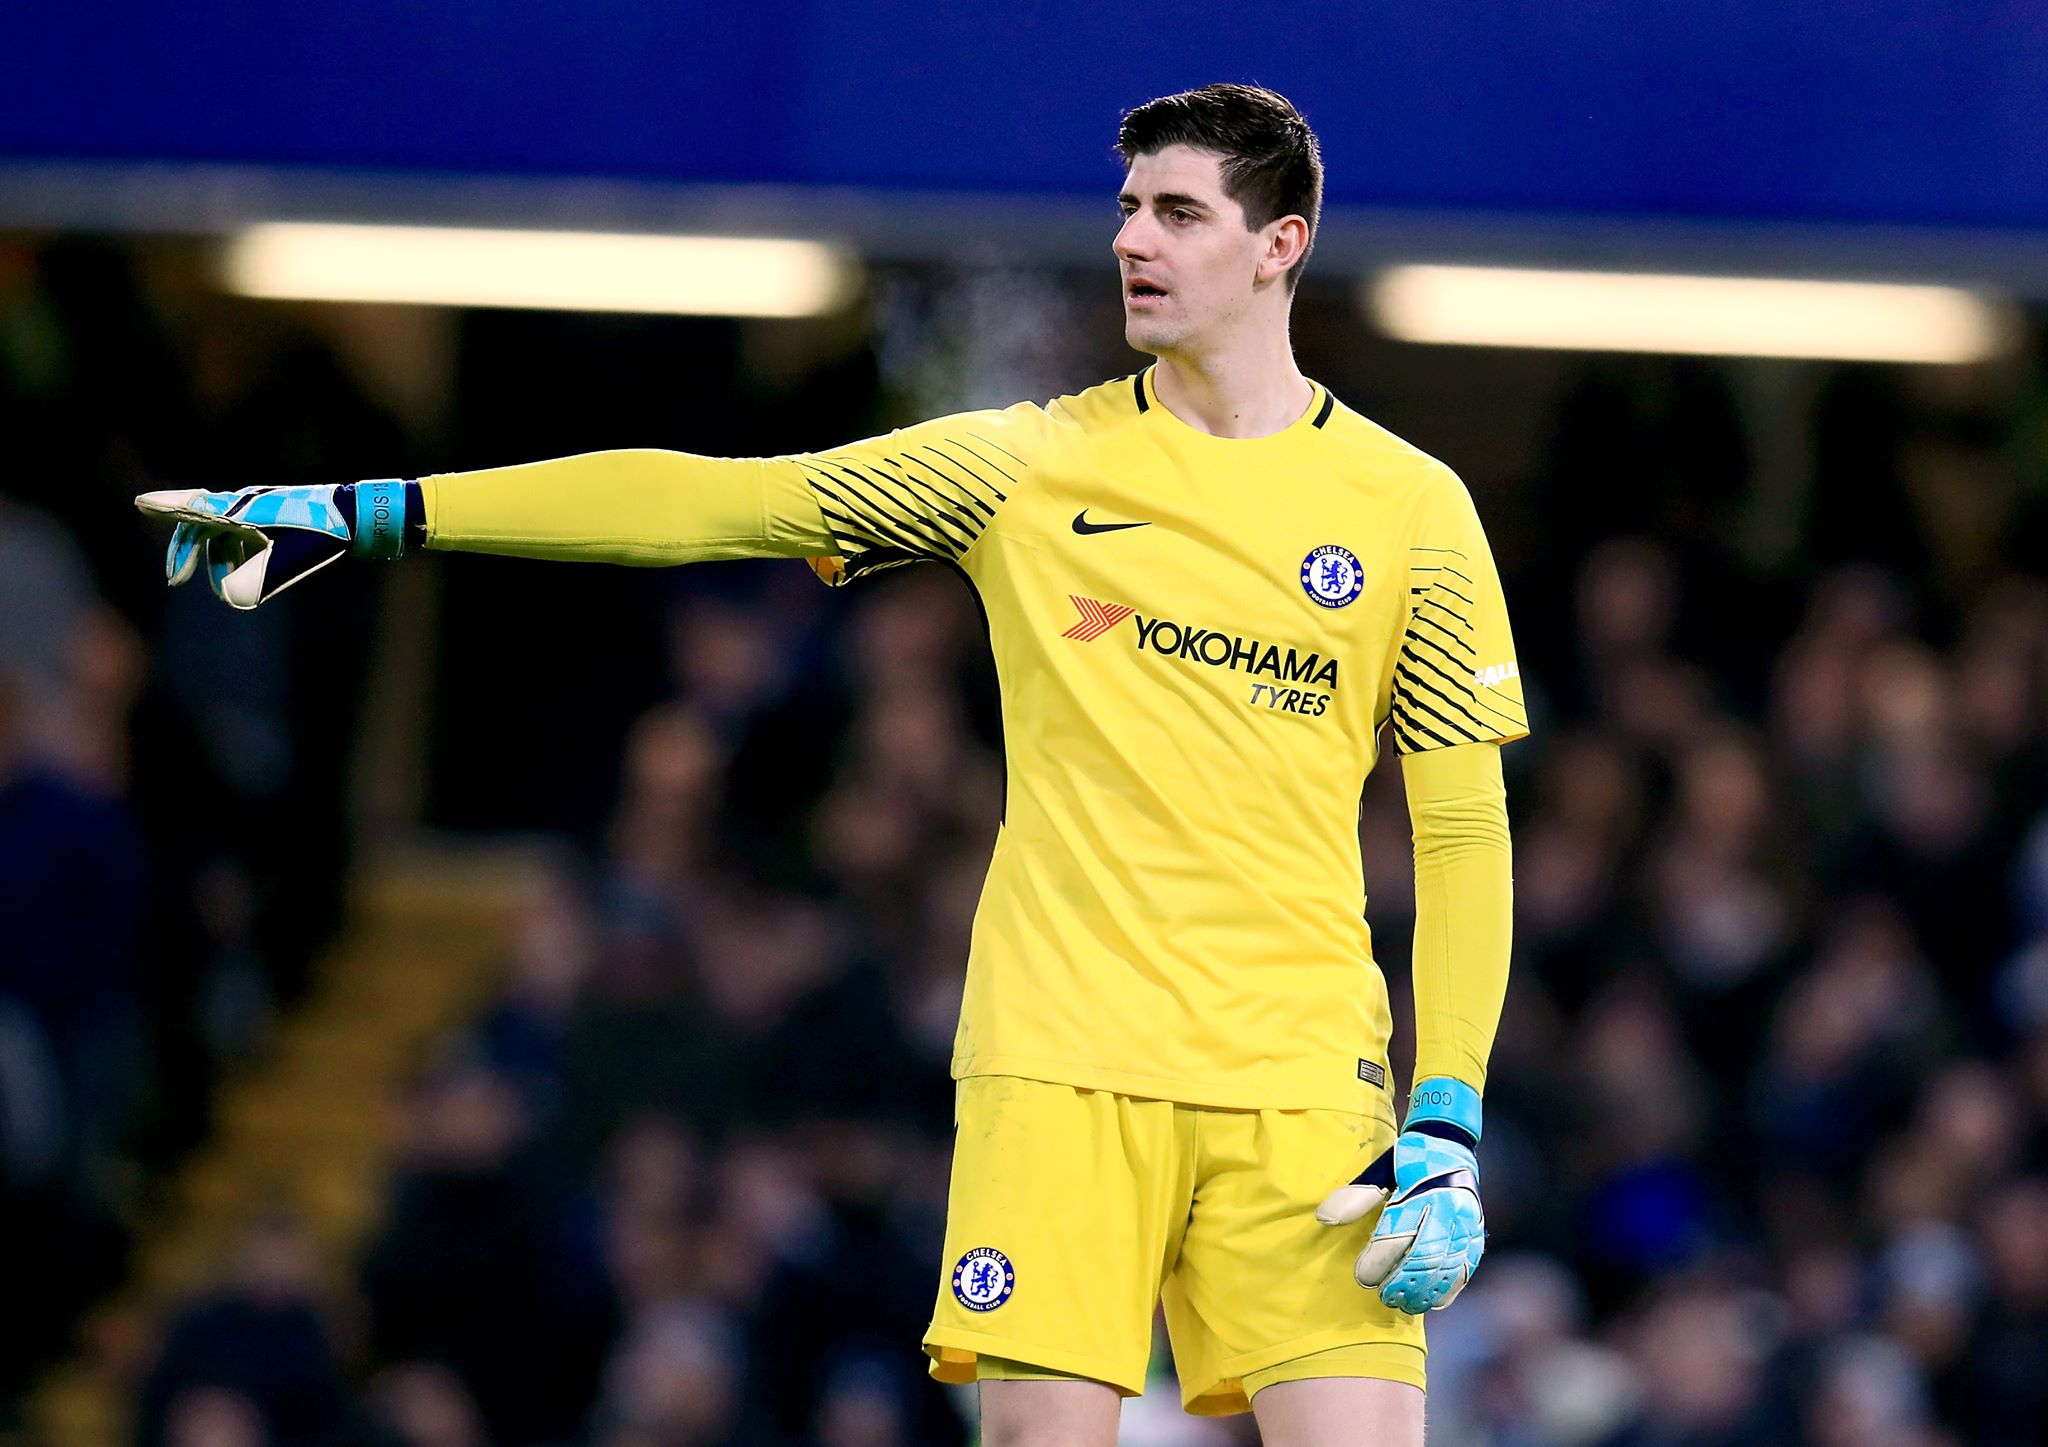 Real Madrid feels 'very different' to Chelsea - Thibaut Courtois